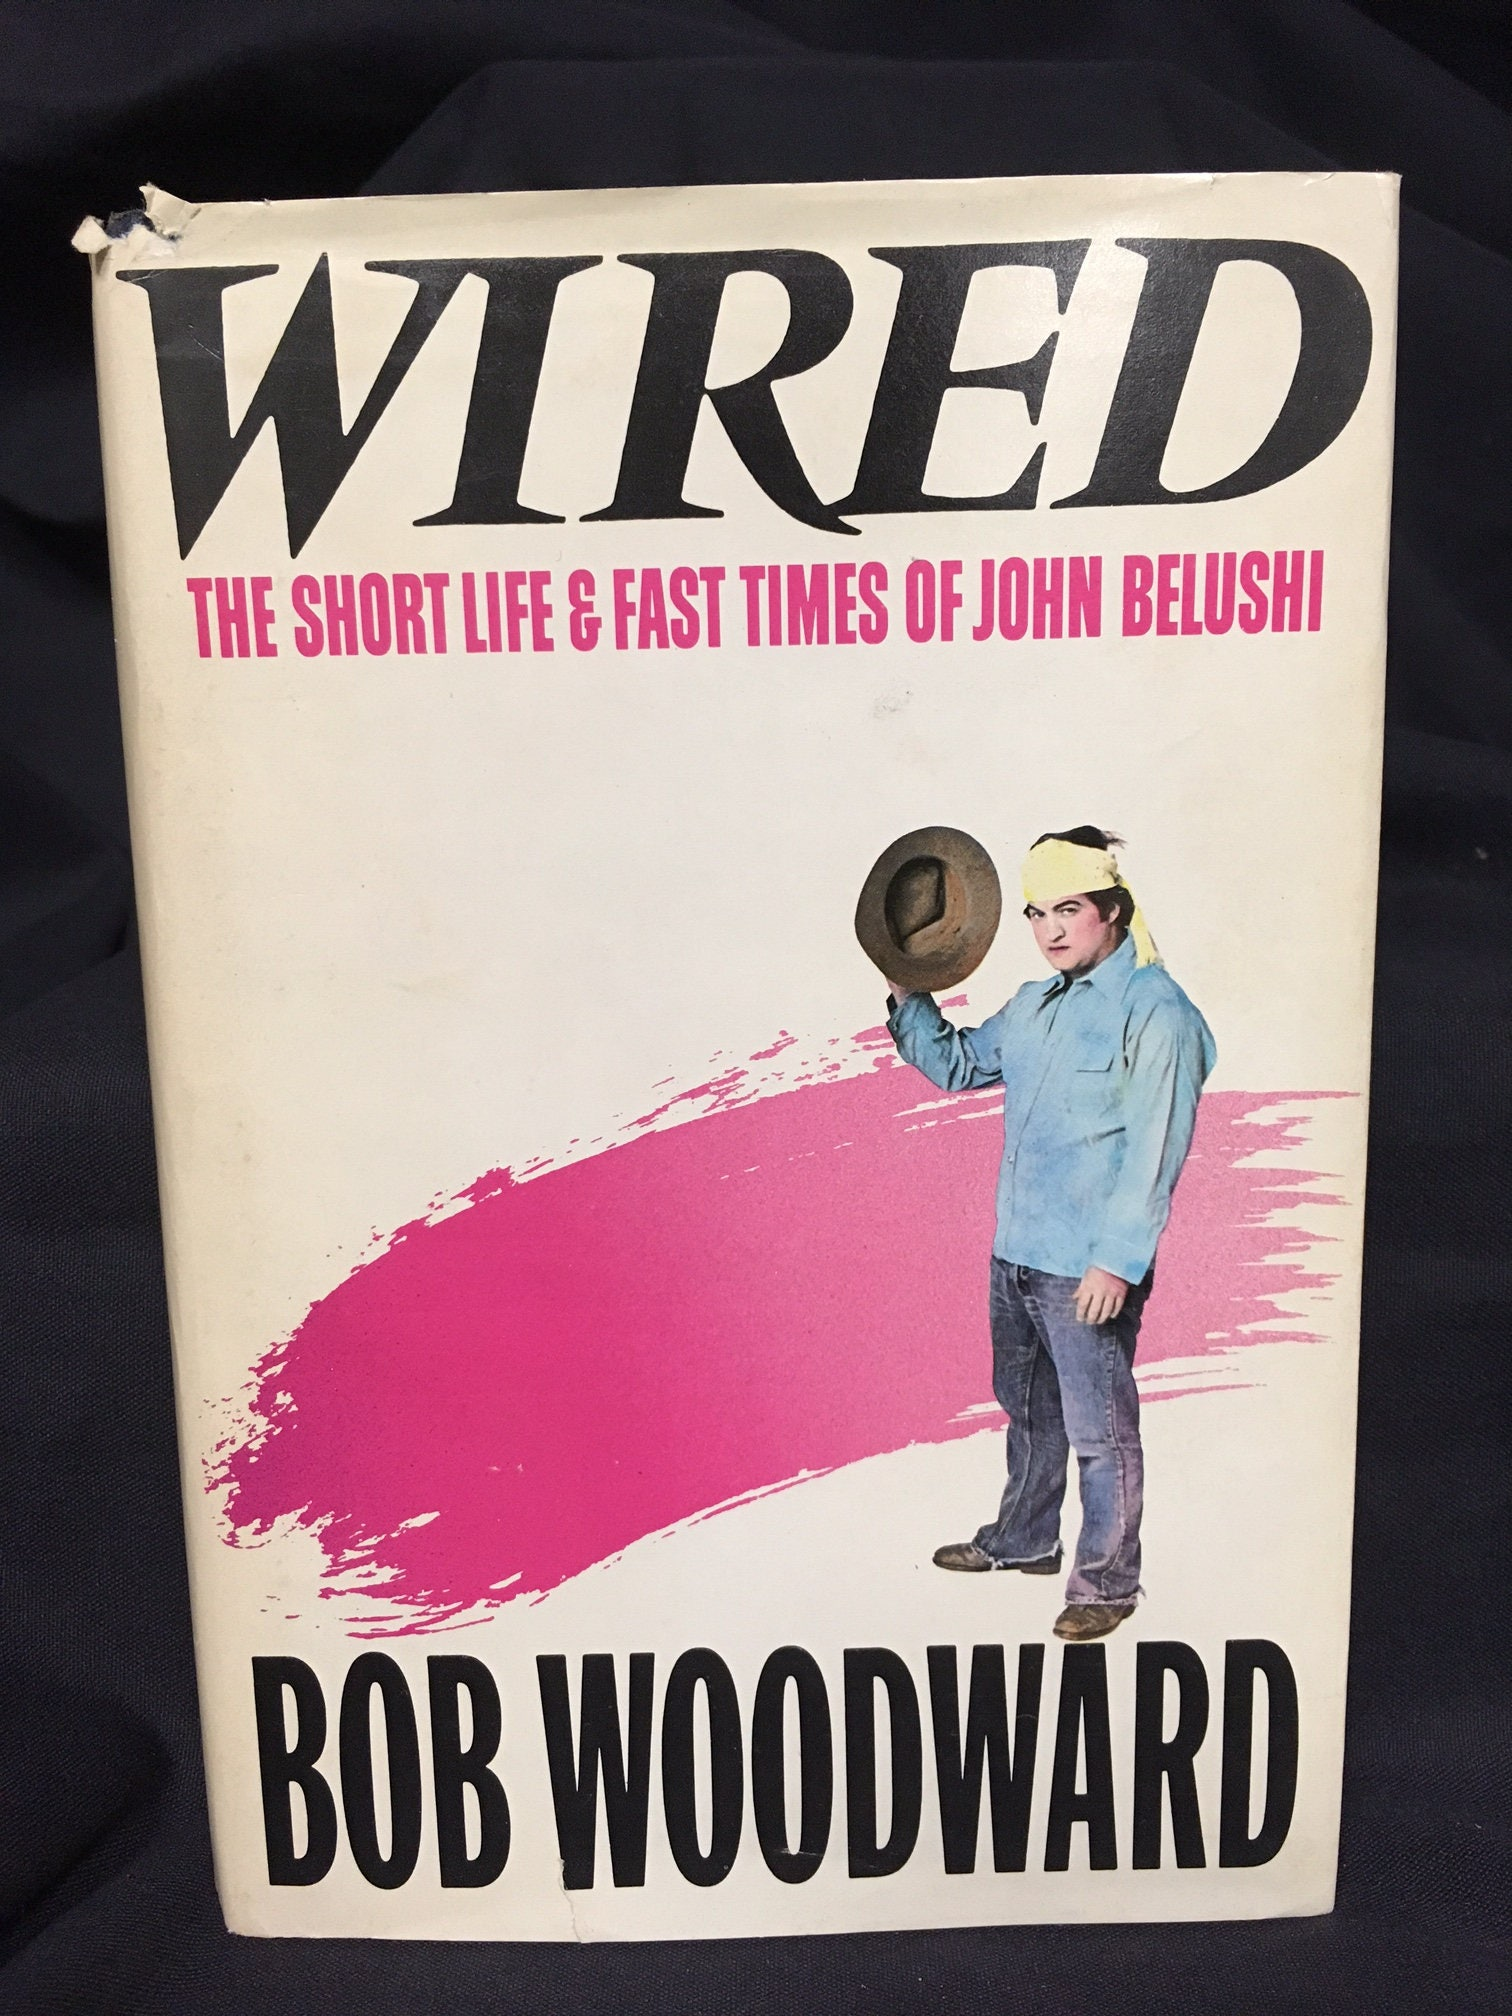 Wired: The Short Life & Fast Times of John Belushi by Bob